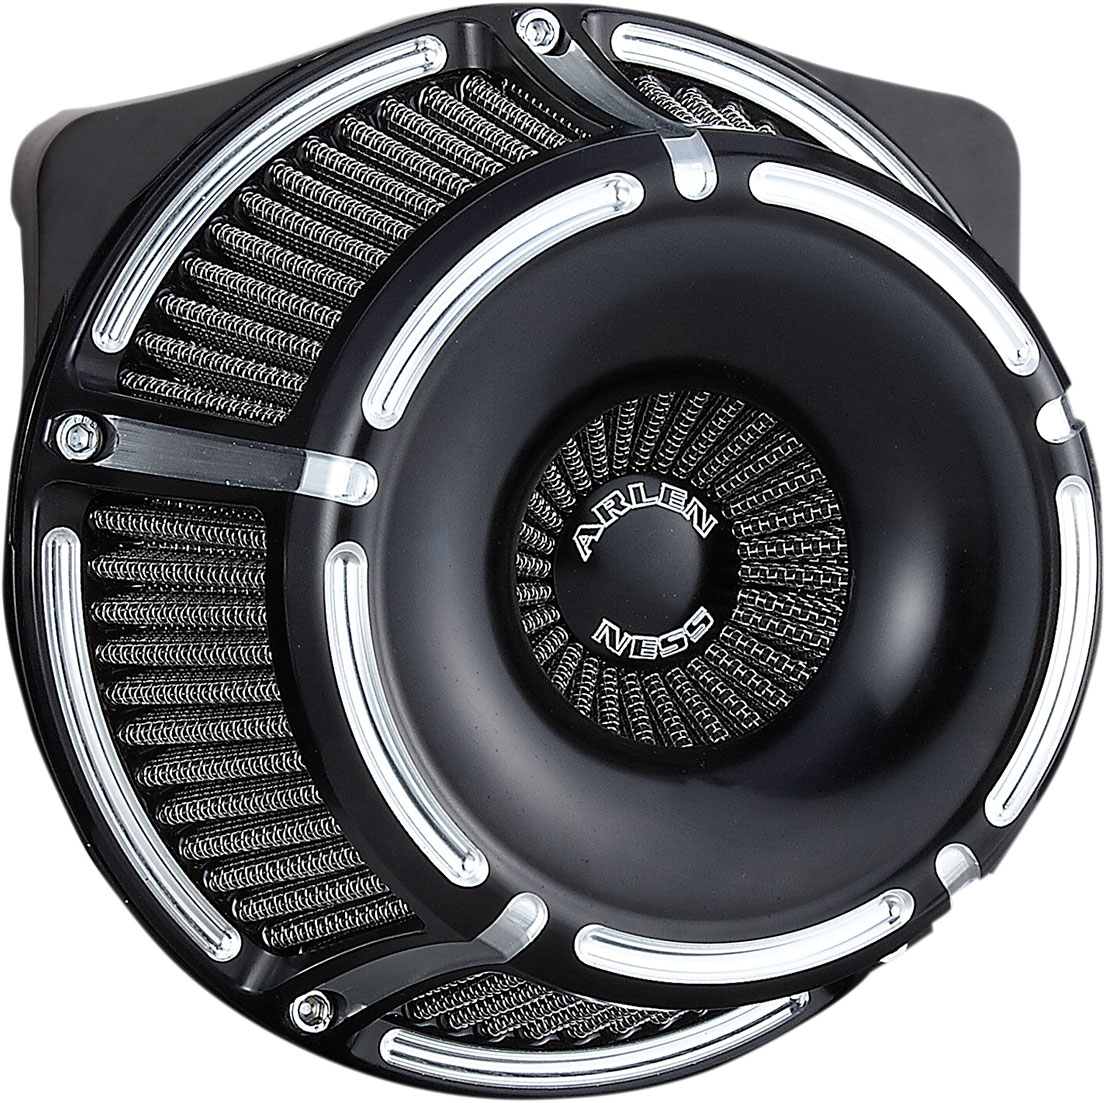 Arlen Ness - 18-915 - Inverted Series Air Cleaner Kit, Slot Track - Black